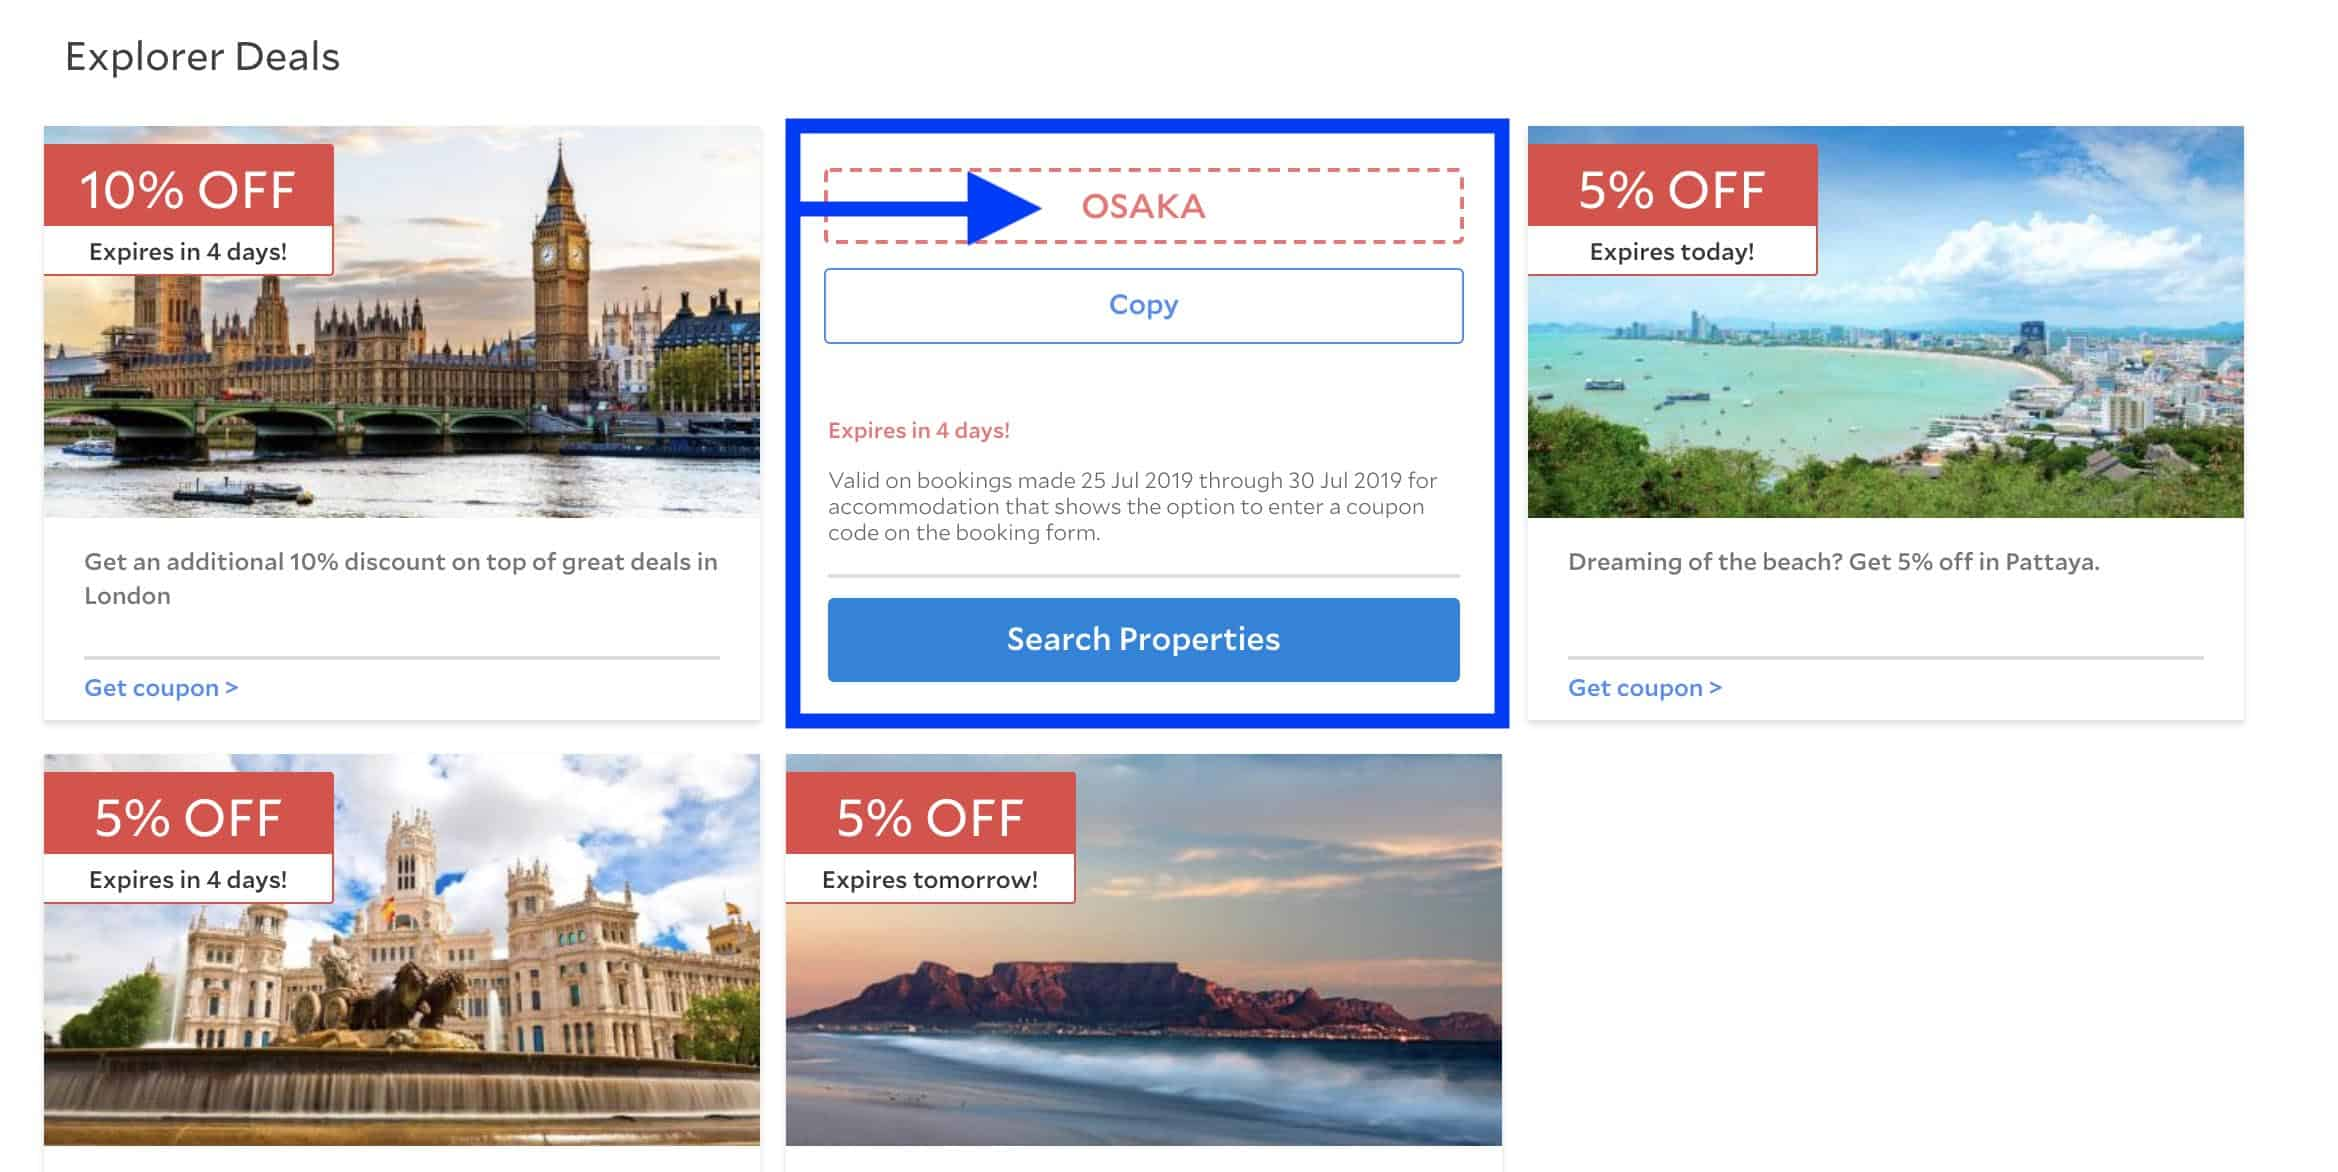 AGODA PROMO CODES and Where to Find Them | The Poor Traveler Itinerary Blog